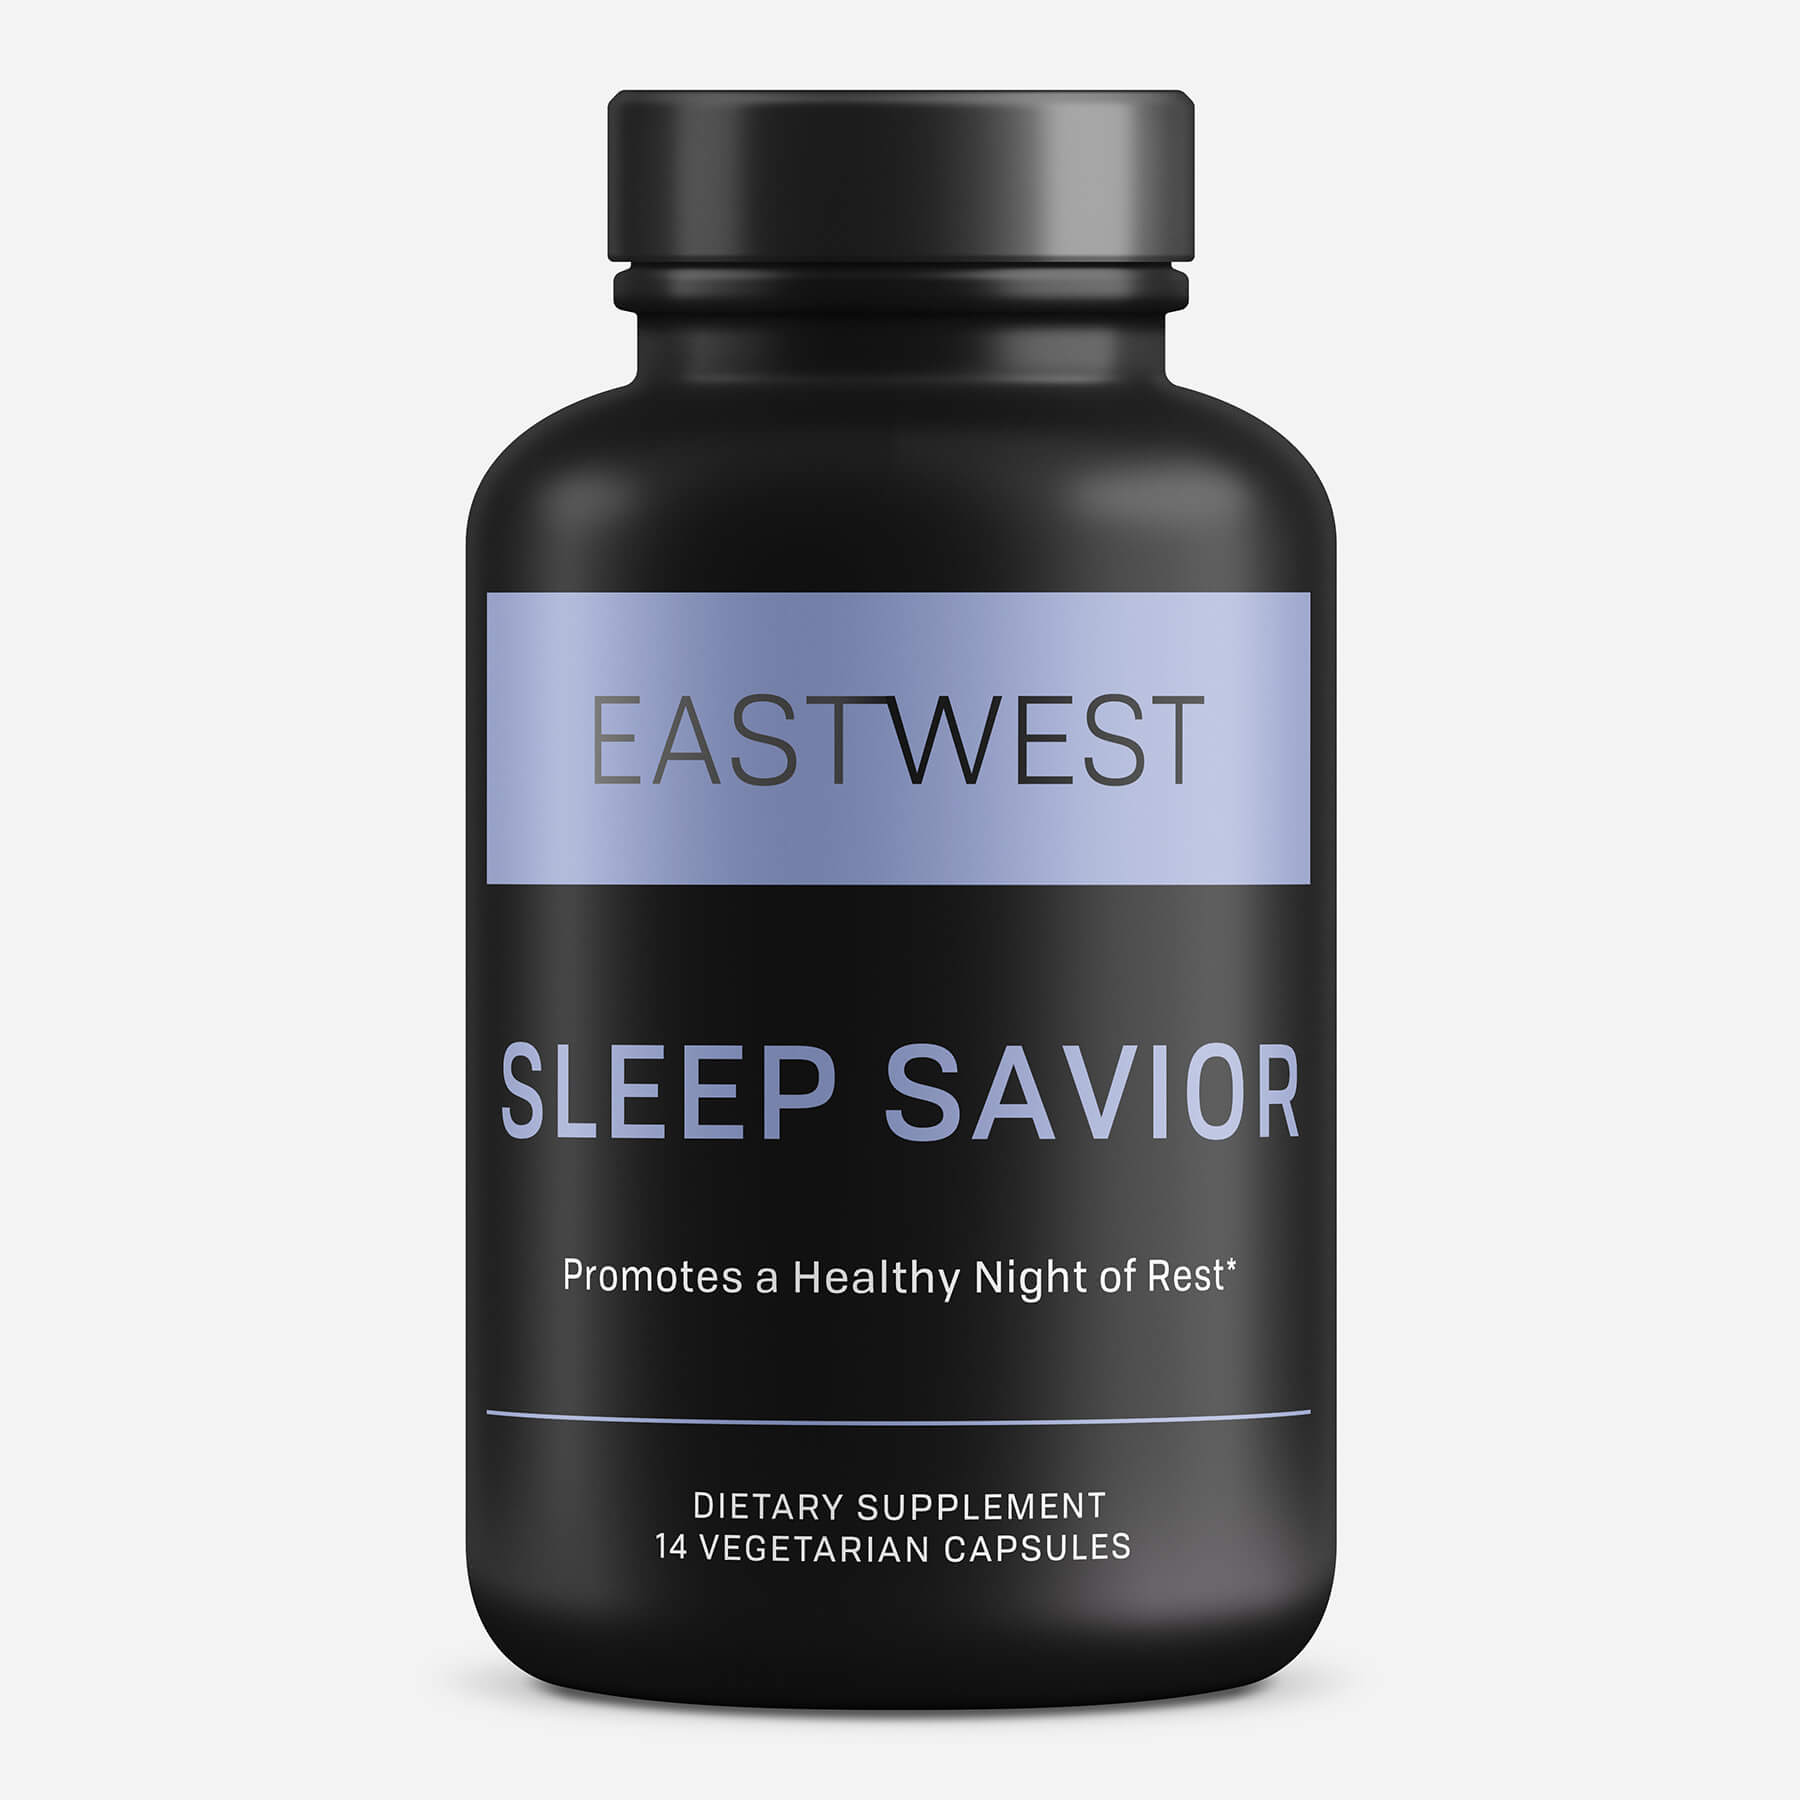 Sleep Savior